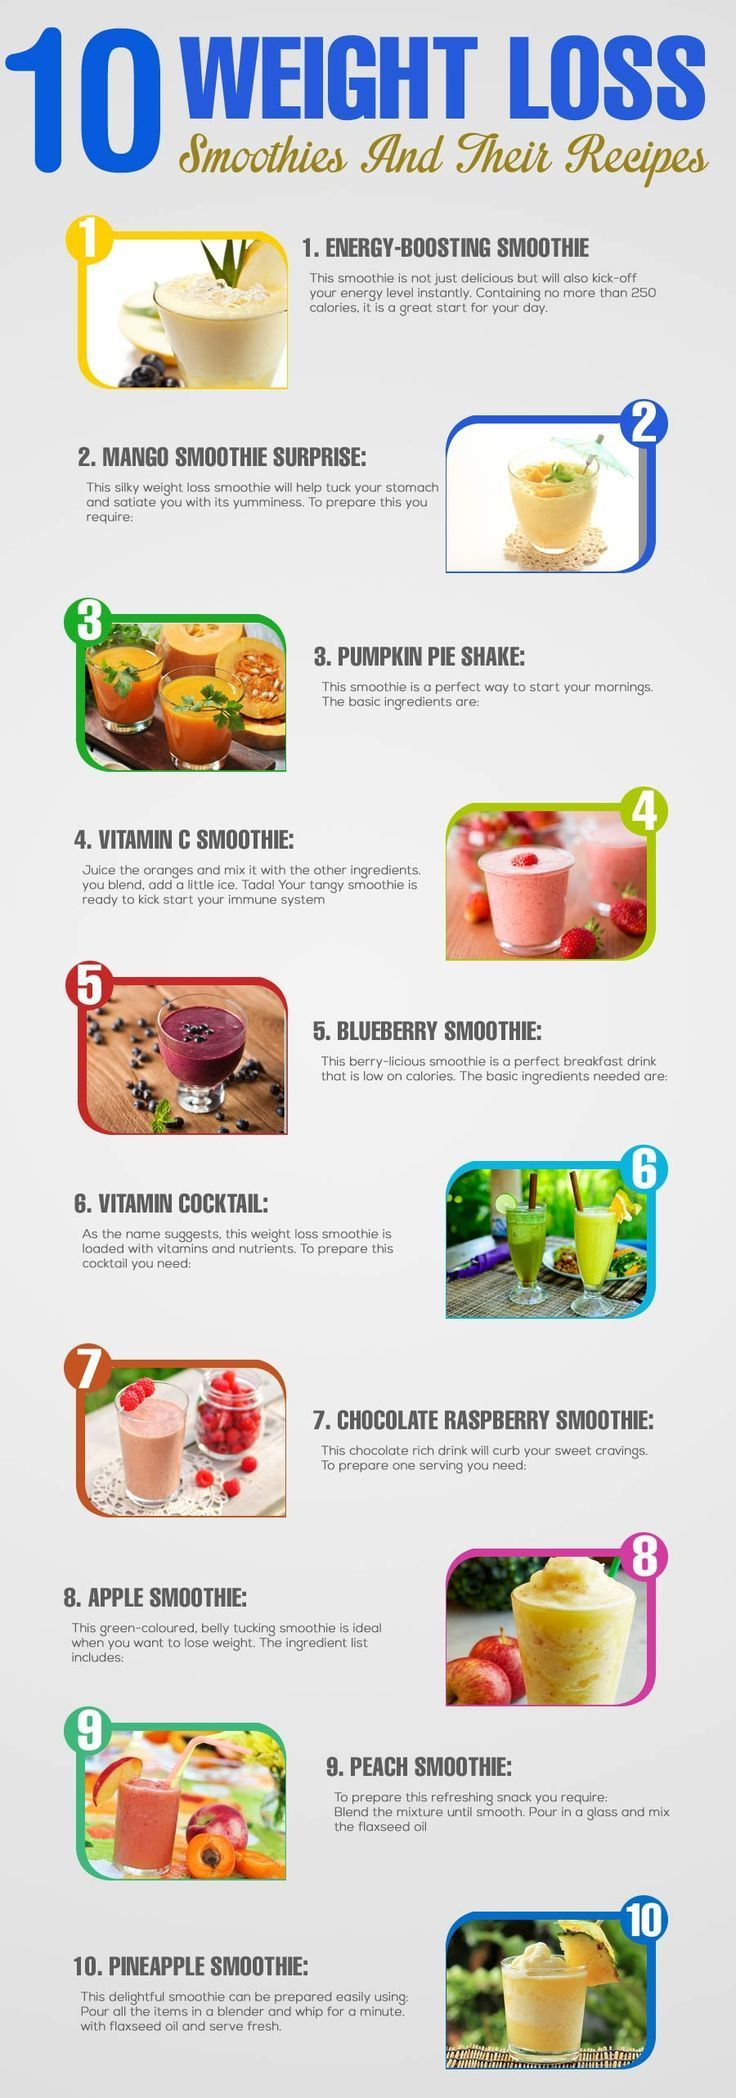 10 Weight Loss Recipes Pictures, Photos, and Images for Facebook, Tumblr, Pinterest, and Twitter